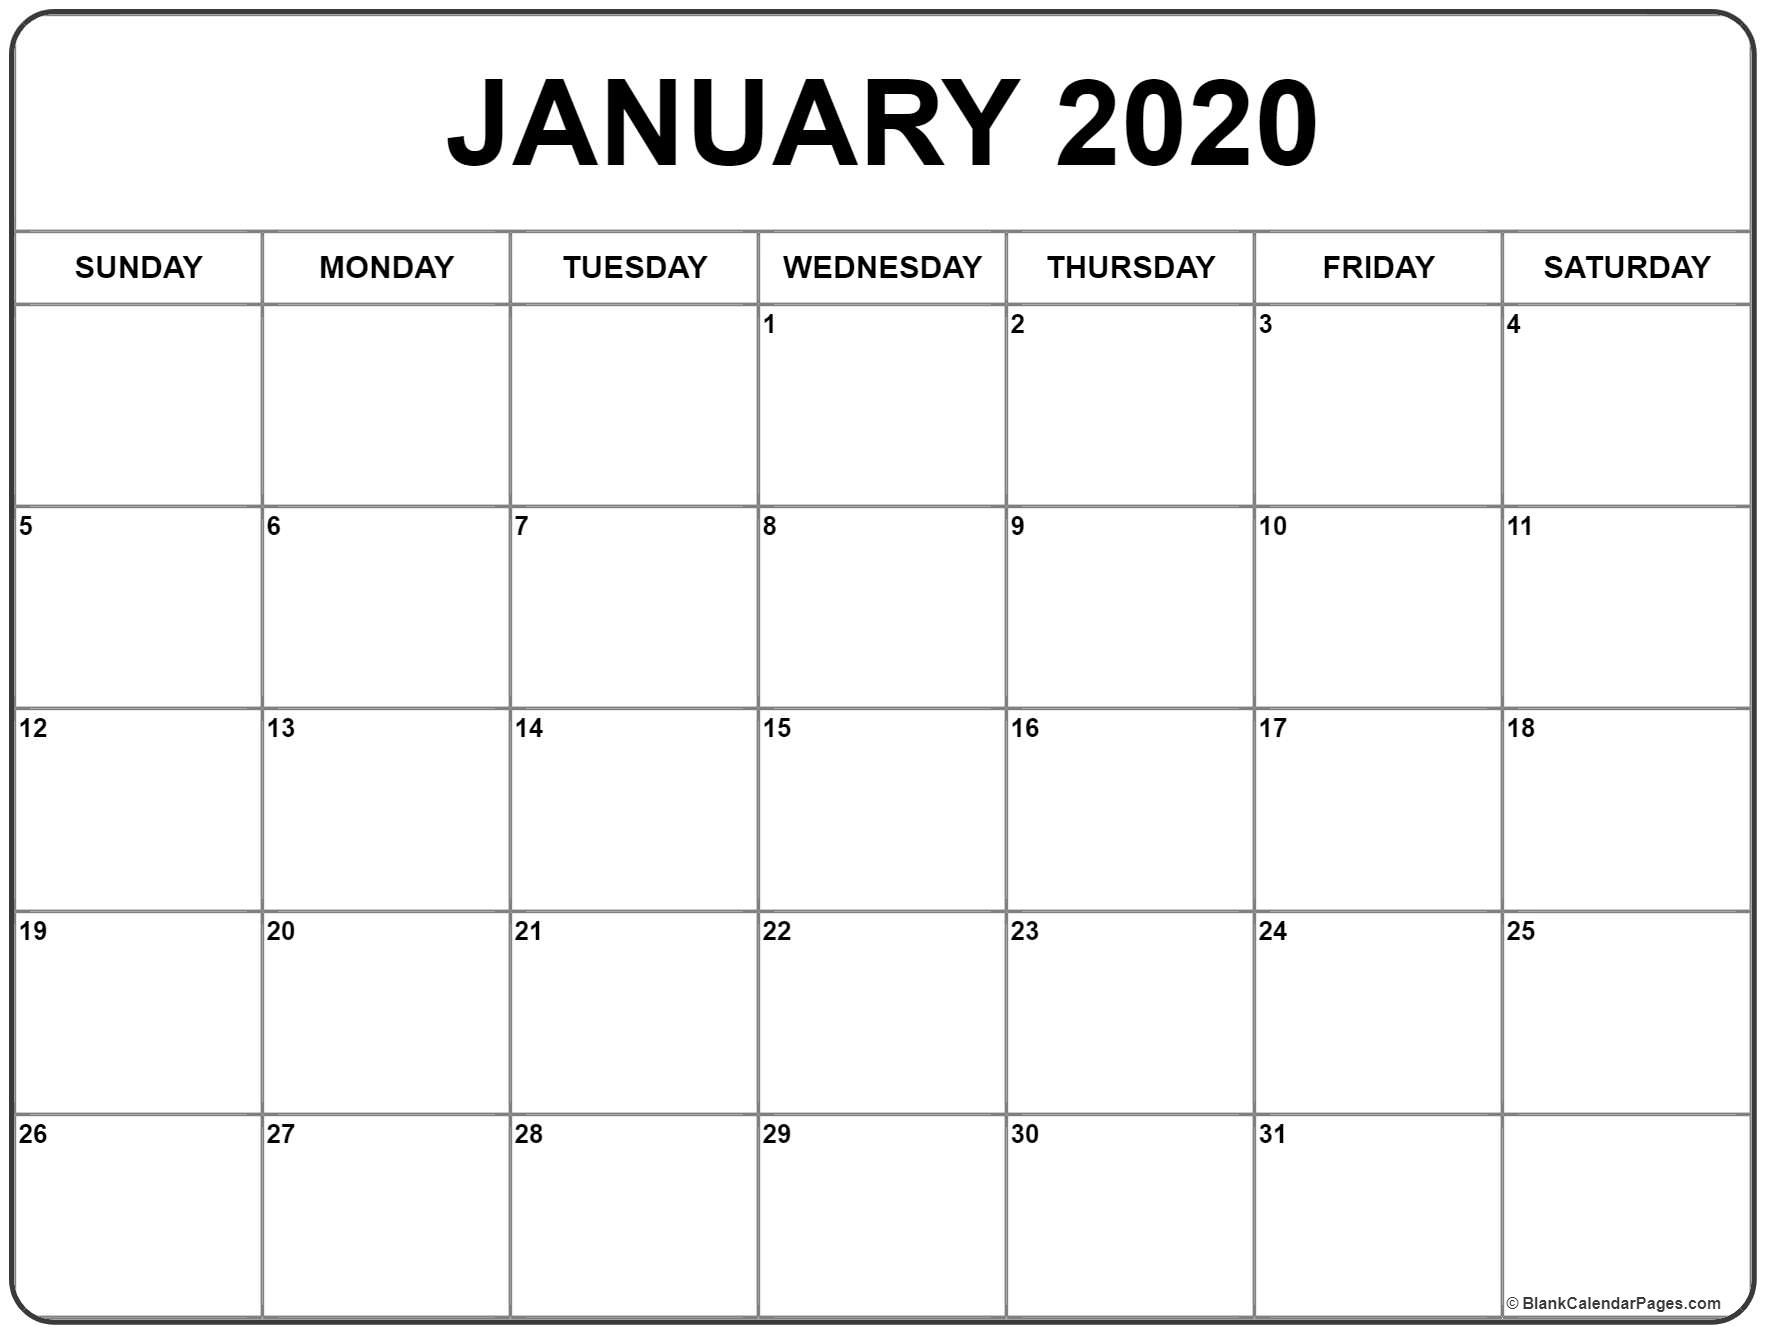 Printable January 2020 Calendar - Free Blank Templates-Month Template 2020 Printable Free Starting On Monday